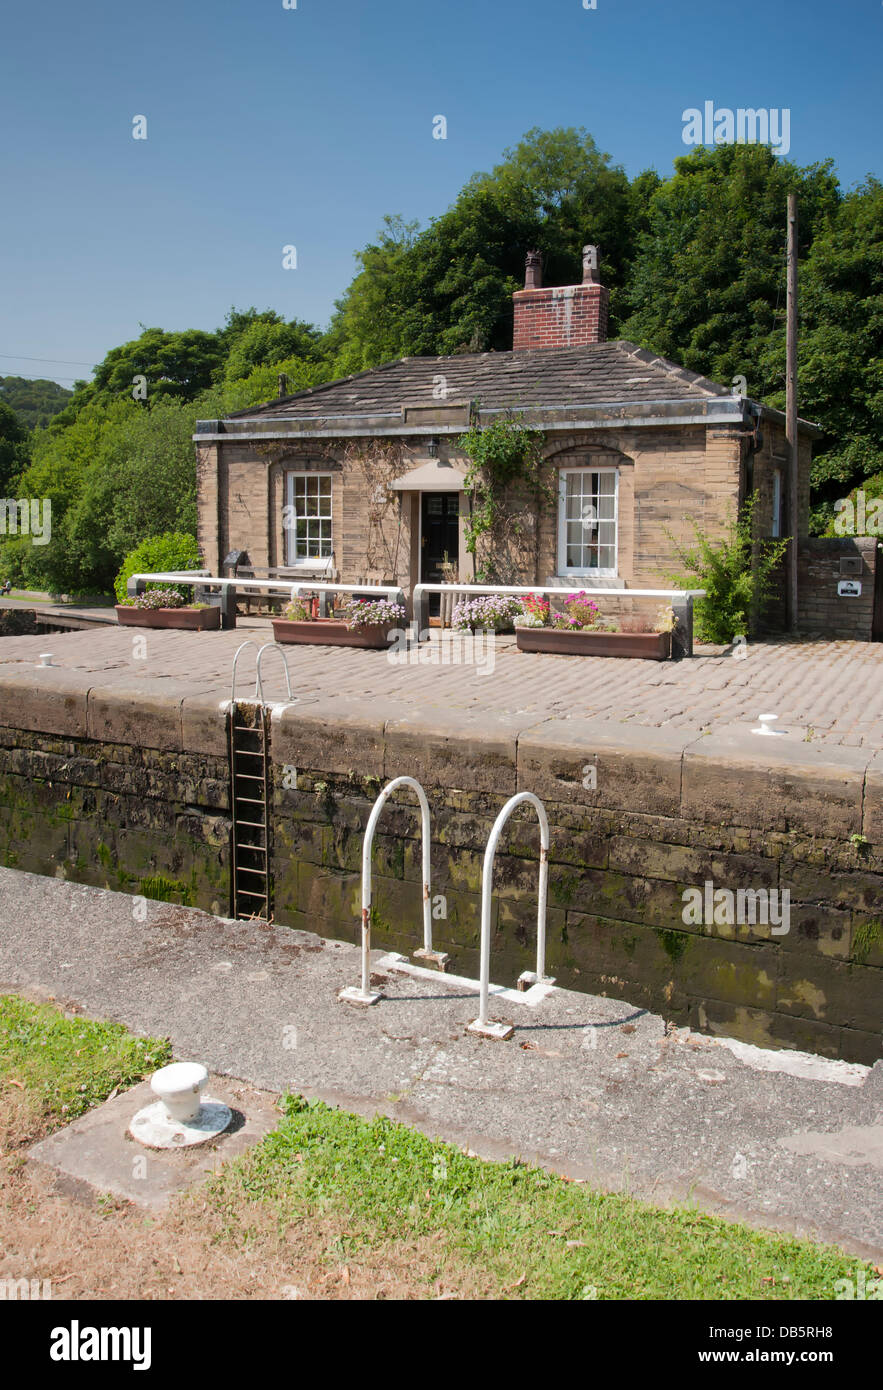 canalside house by lock - Stock Image